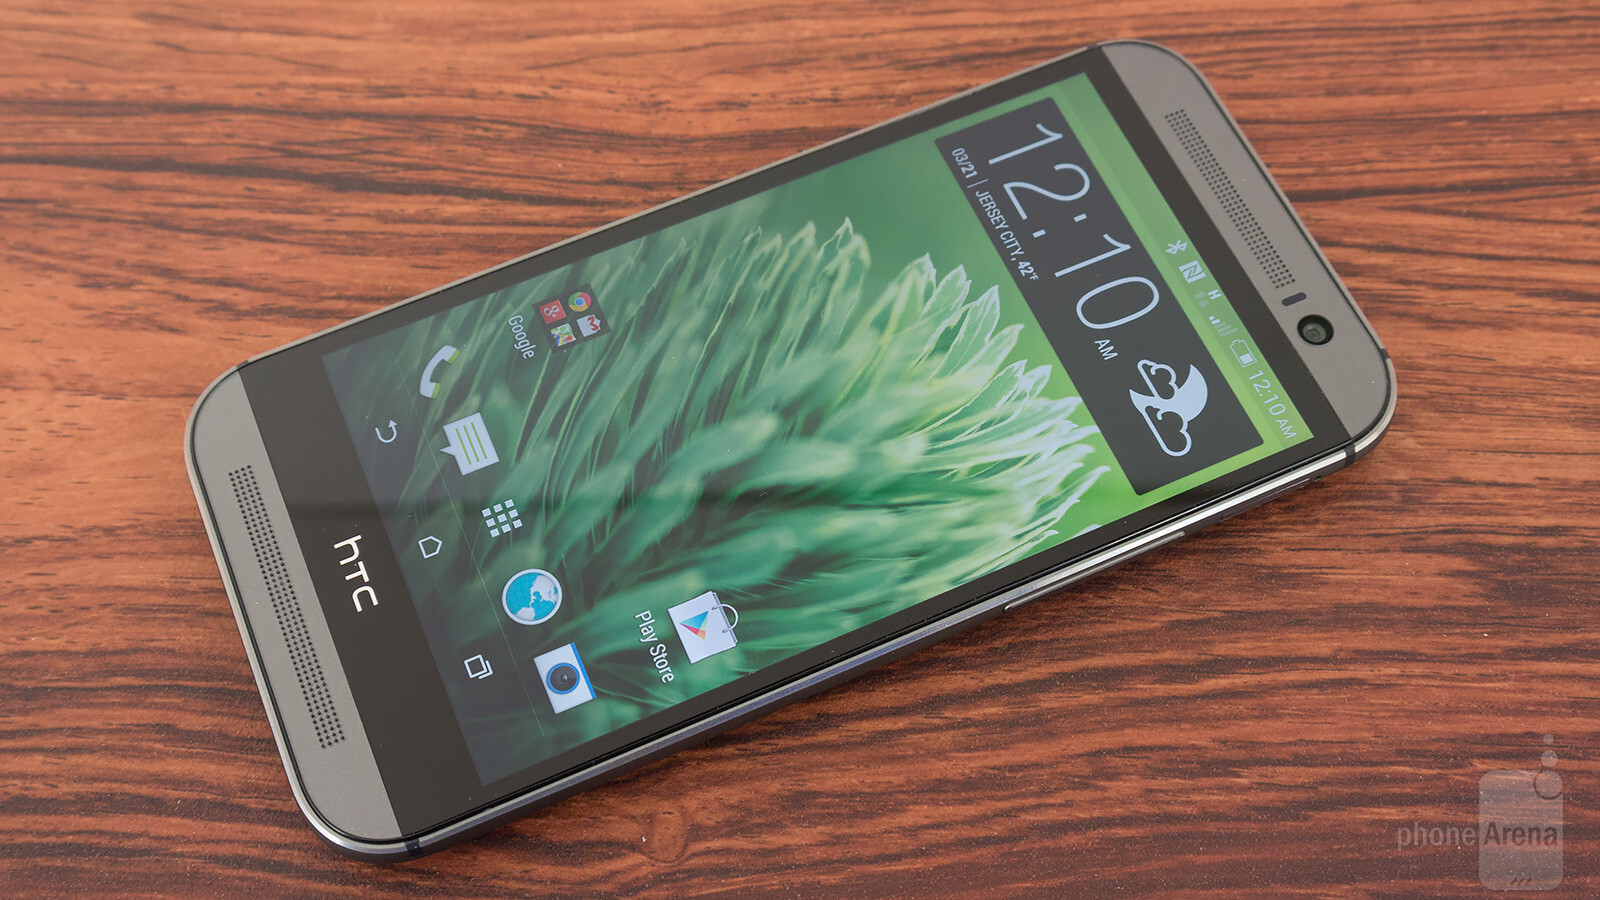 10 problems with the HTC One (M8) and how to fix them